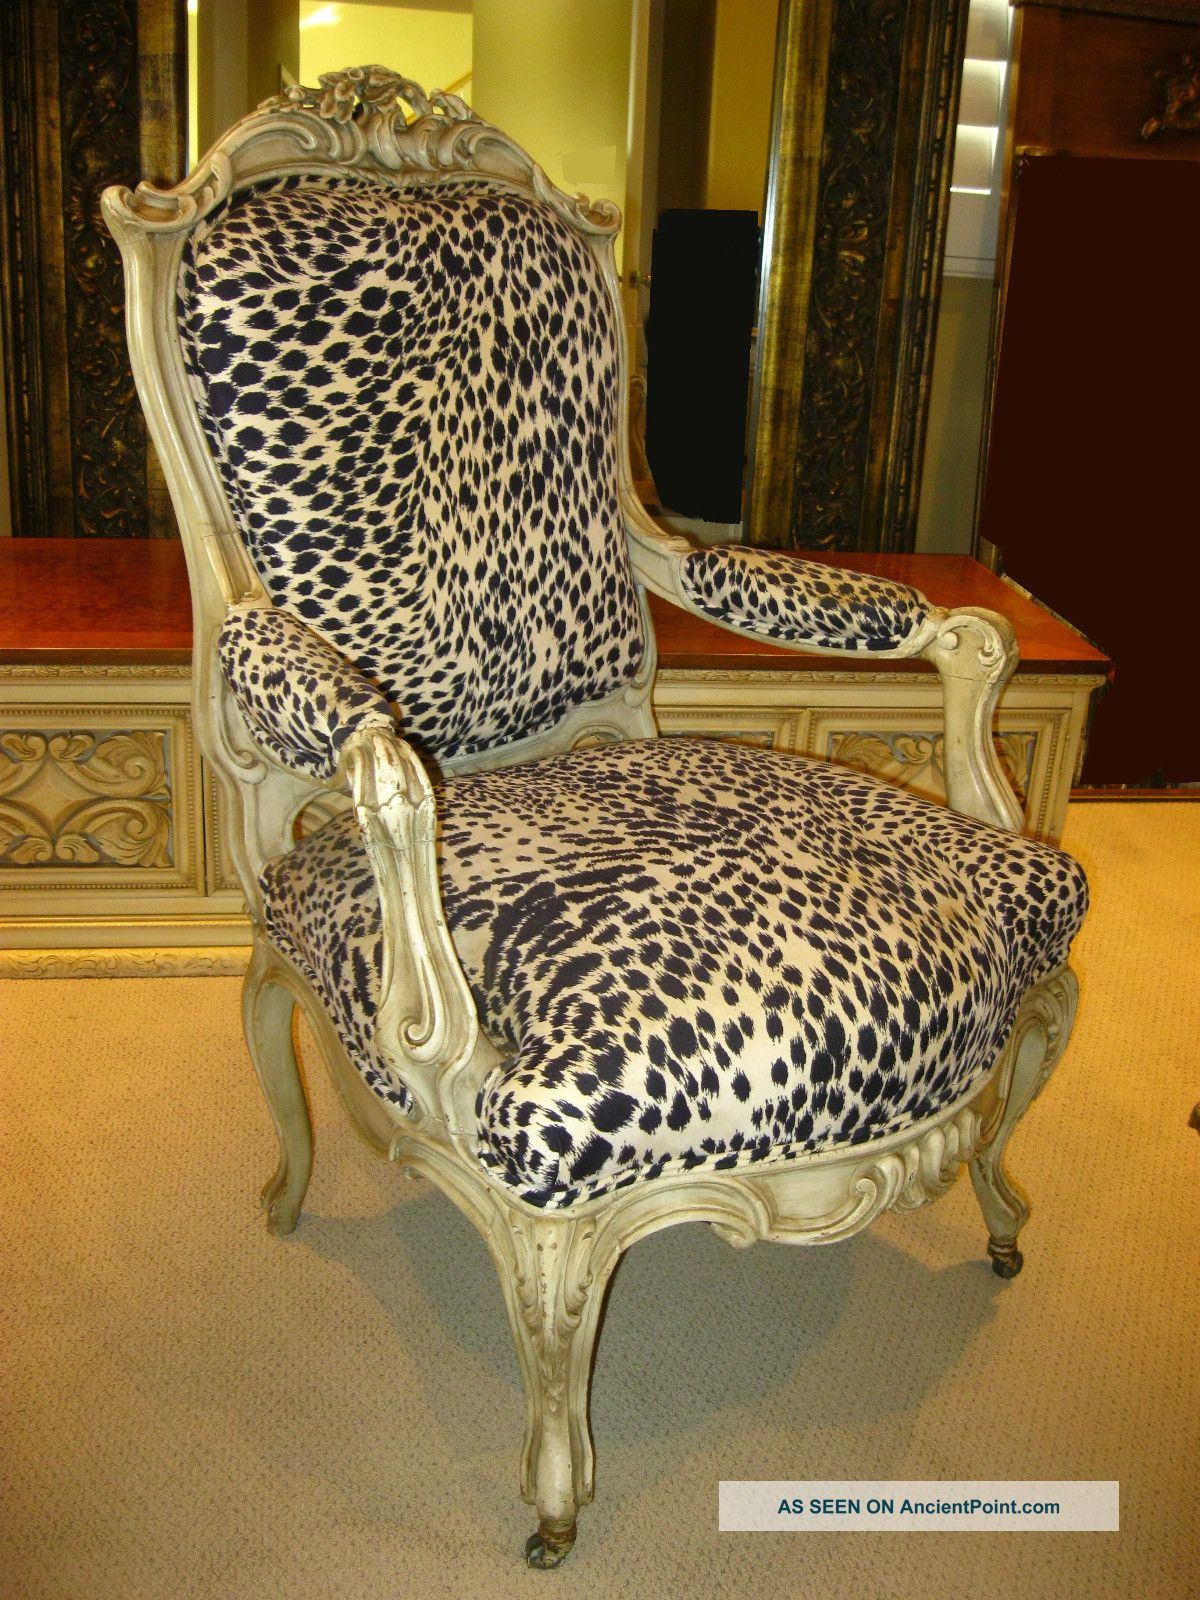 French Provincial Hollywood Regency White Leopard Print Accent Ornate Arm Chair Post-1950 photo